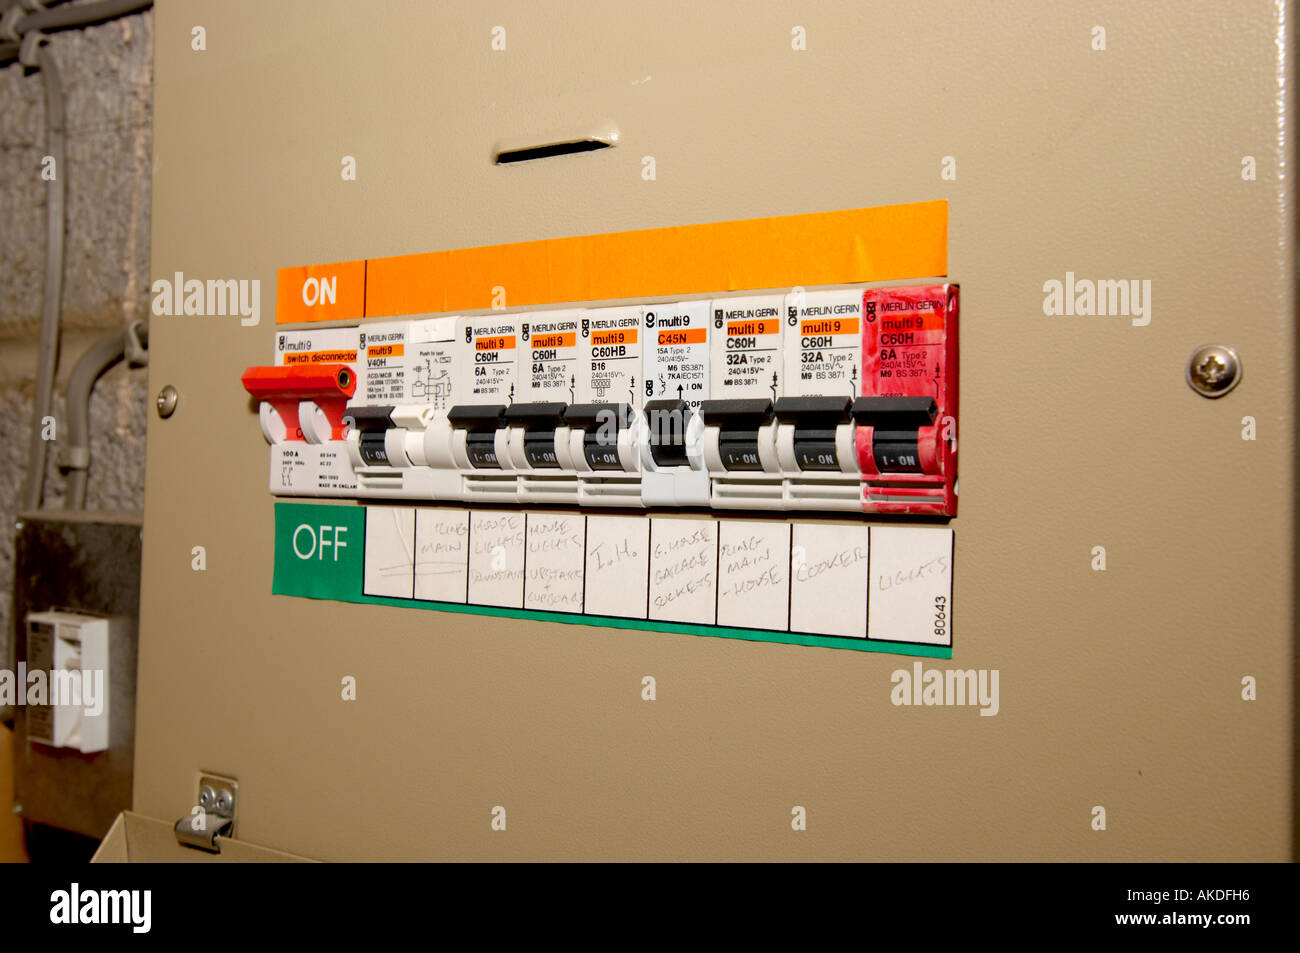 hight resolution of old fuse box diagram wiring diagram yes old home fuse box diagram